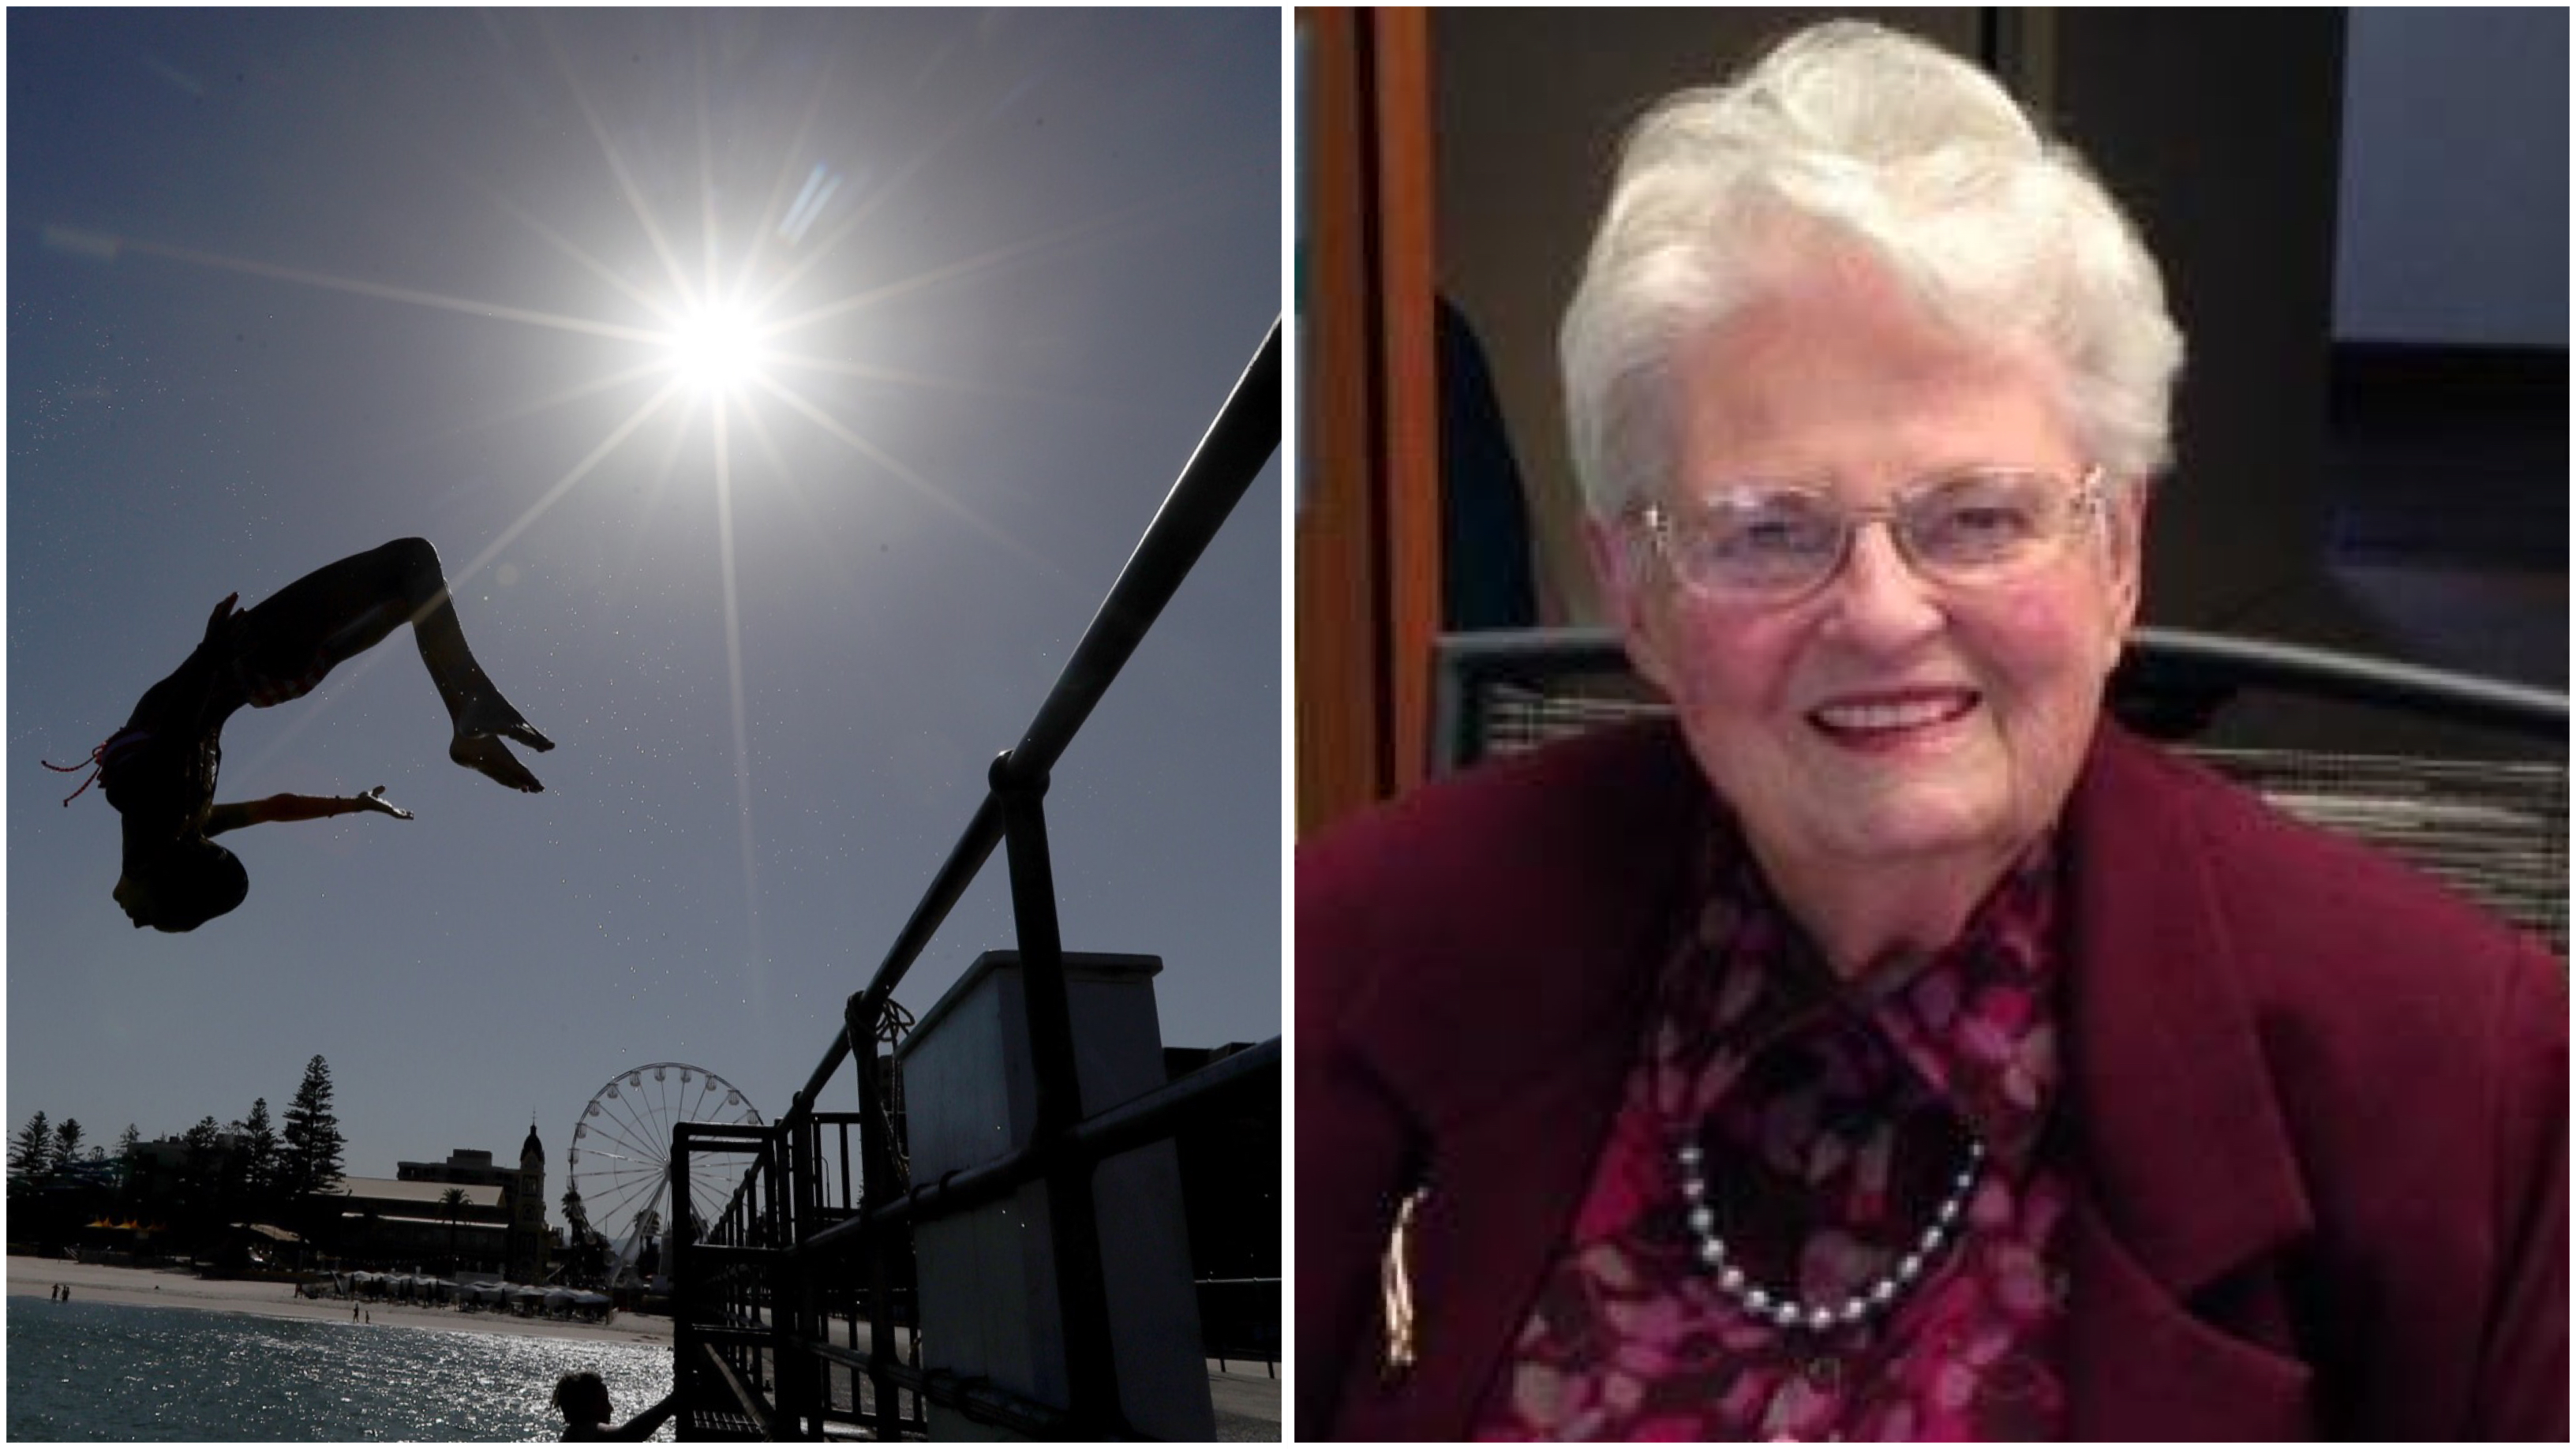 Great-great grandmother has lived through both of Adelaide's hottest days